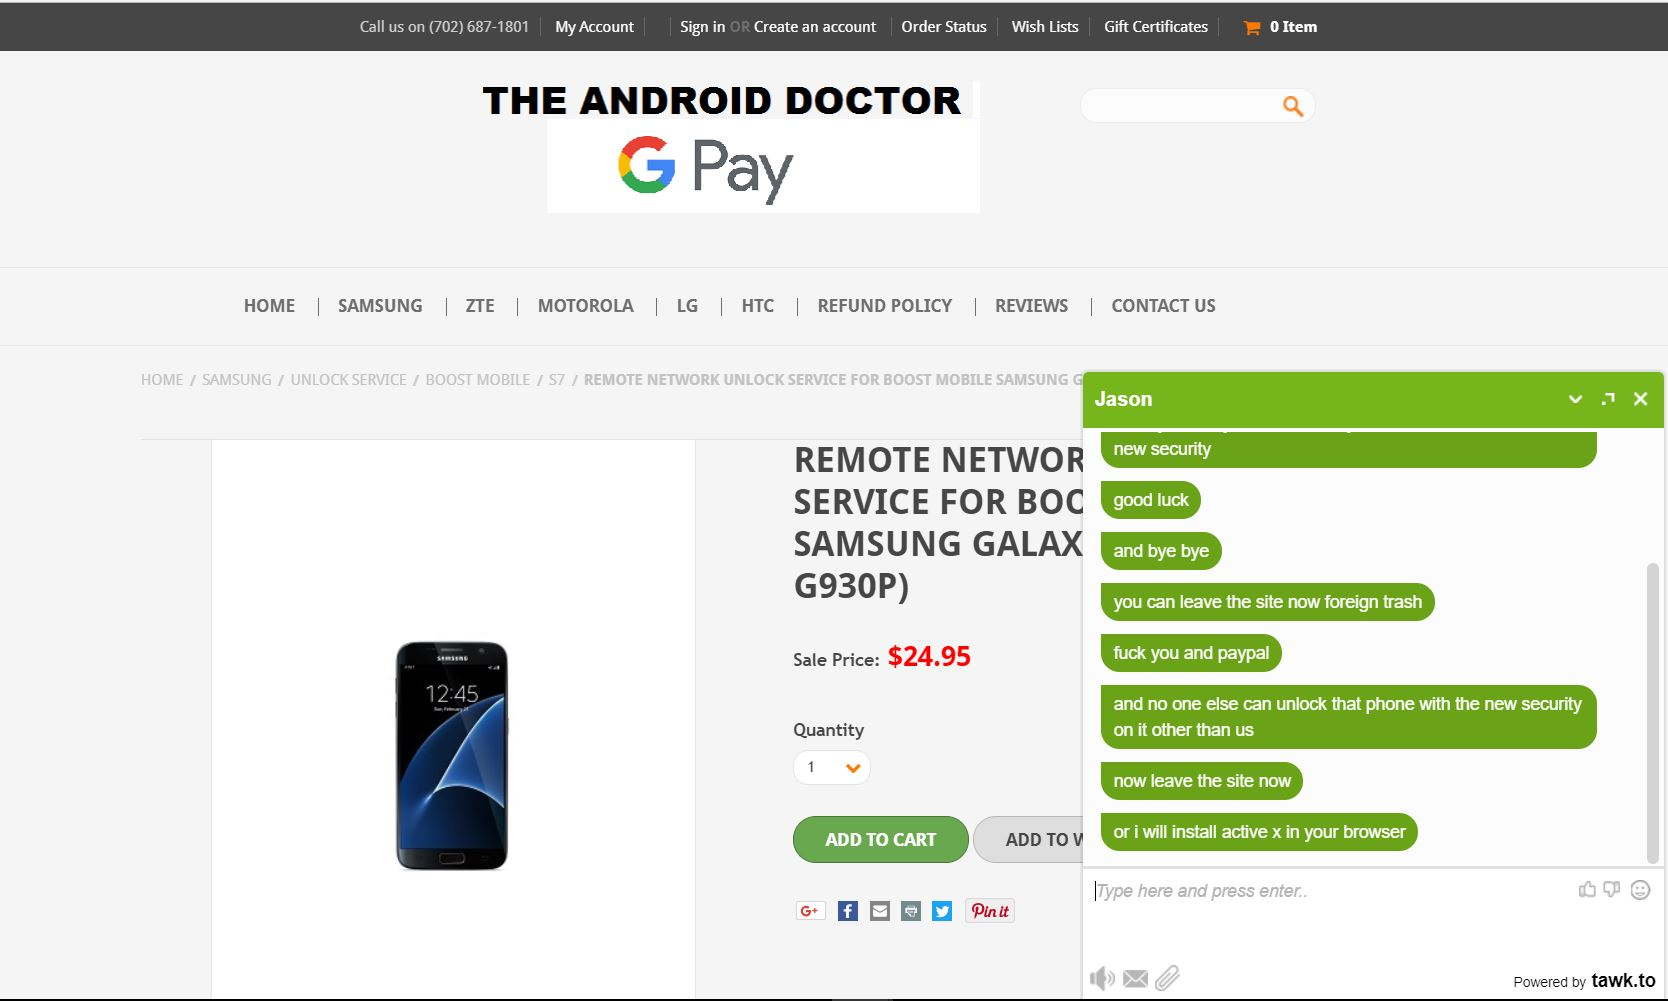 The Android Doctor Reviews - 27 Reviews of Theandroiddoctor com